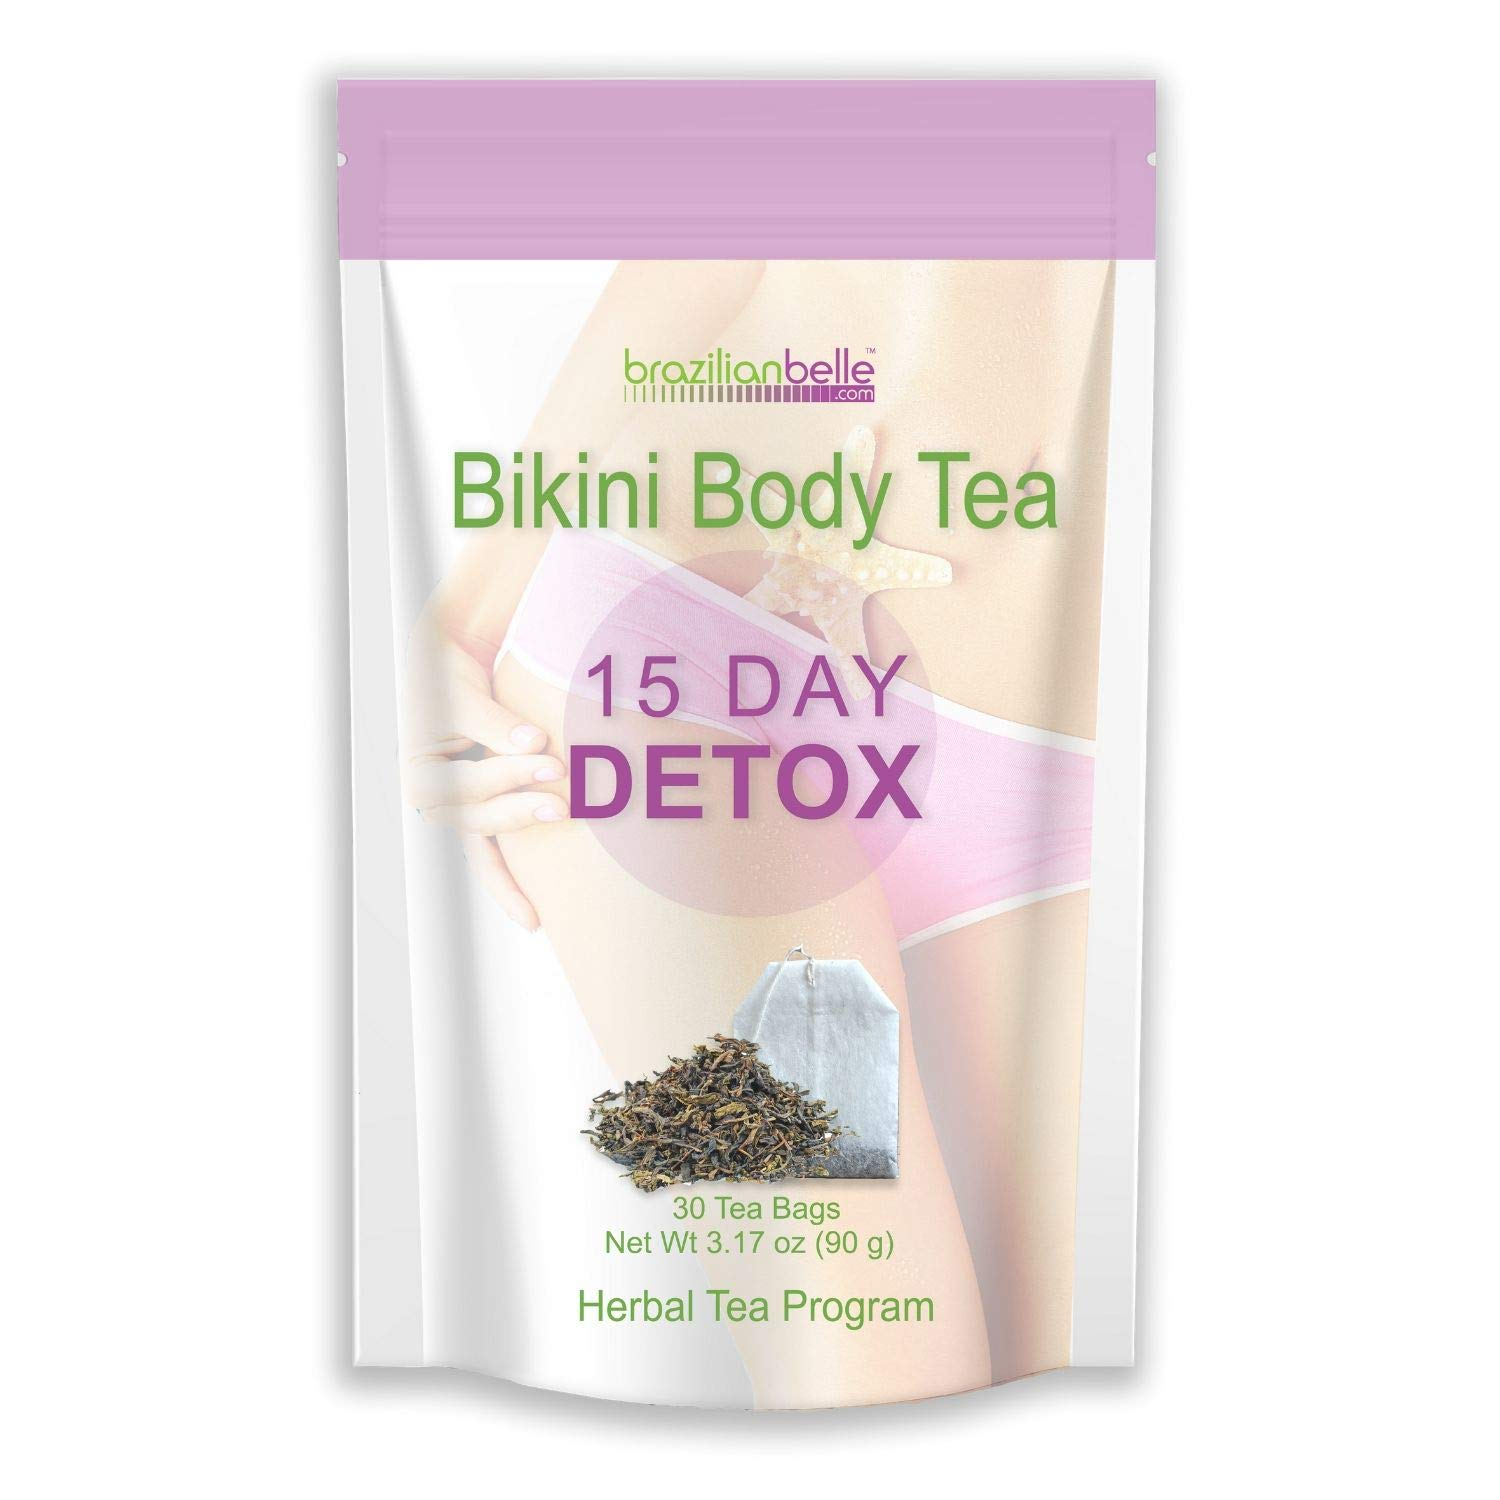 Bikini Body Detox Tea for Weight Loss - Best Slimming Tea on Amazon - Boosts Metabolism, Shrinks Love Handles and Improves Complexion (15 Day Detox) by Brazilian Belle